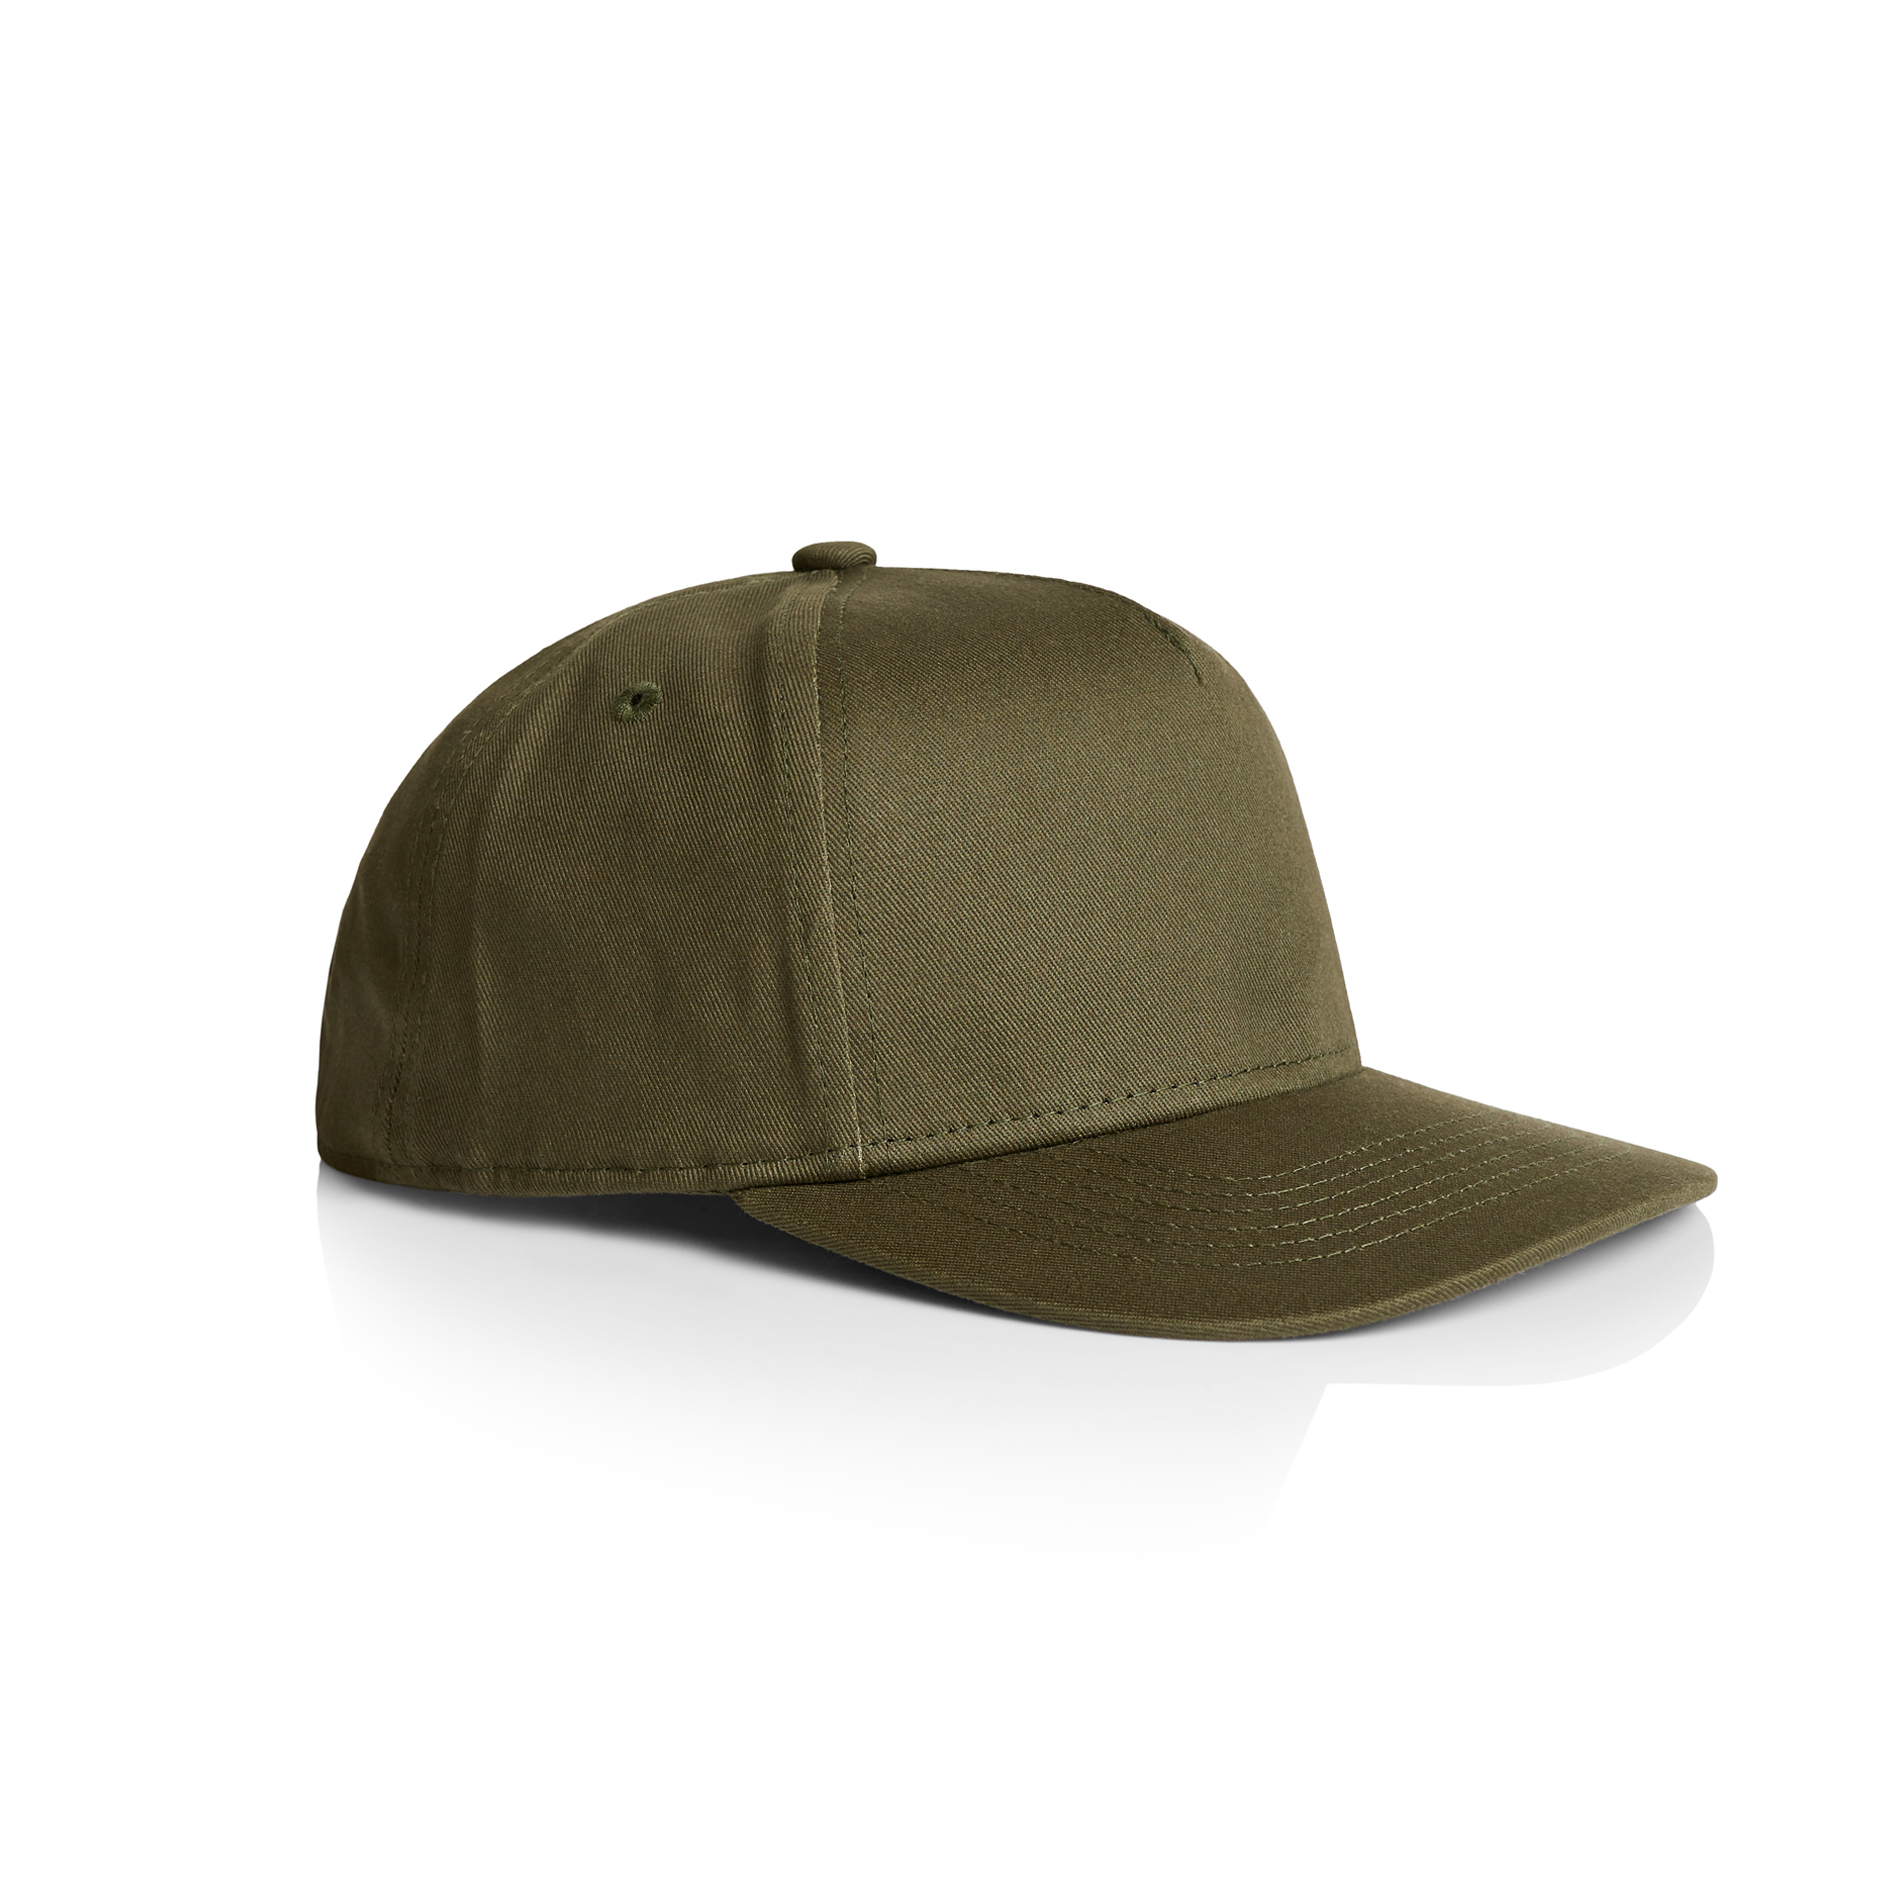 1109 BILLY PANEL CAP